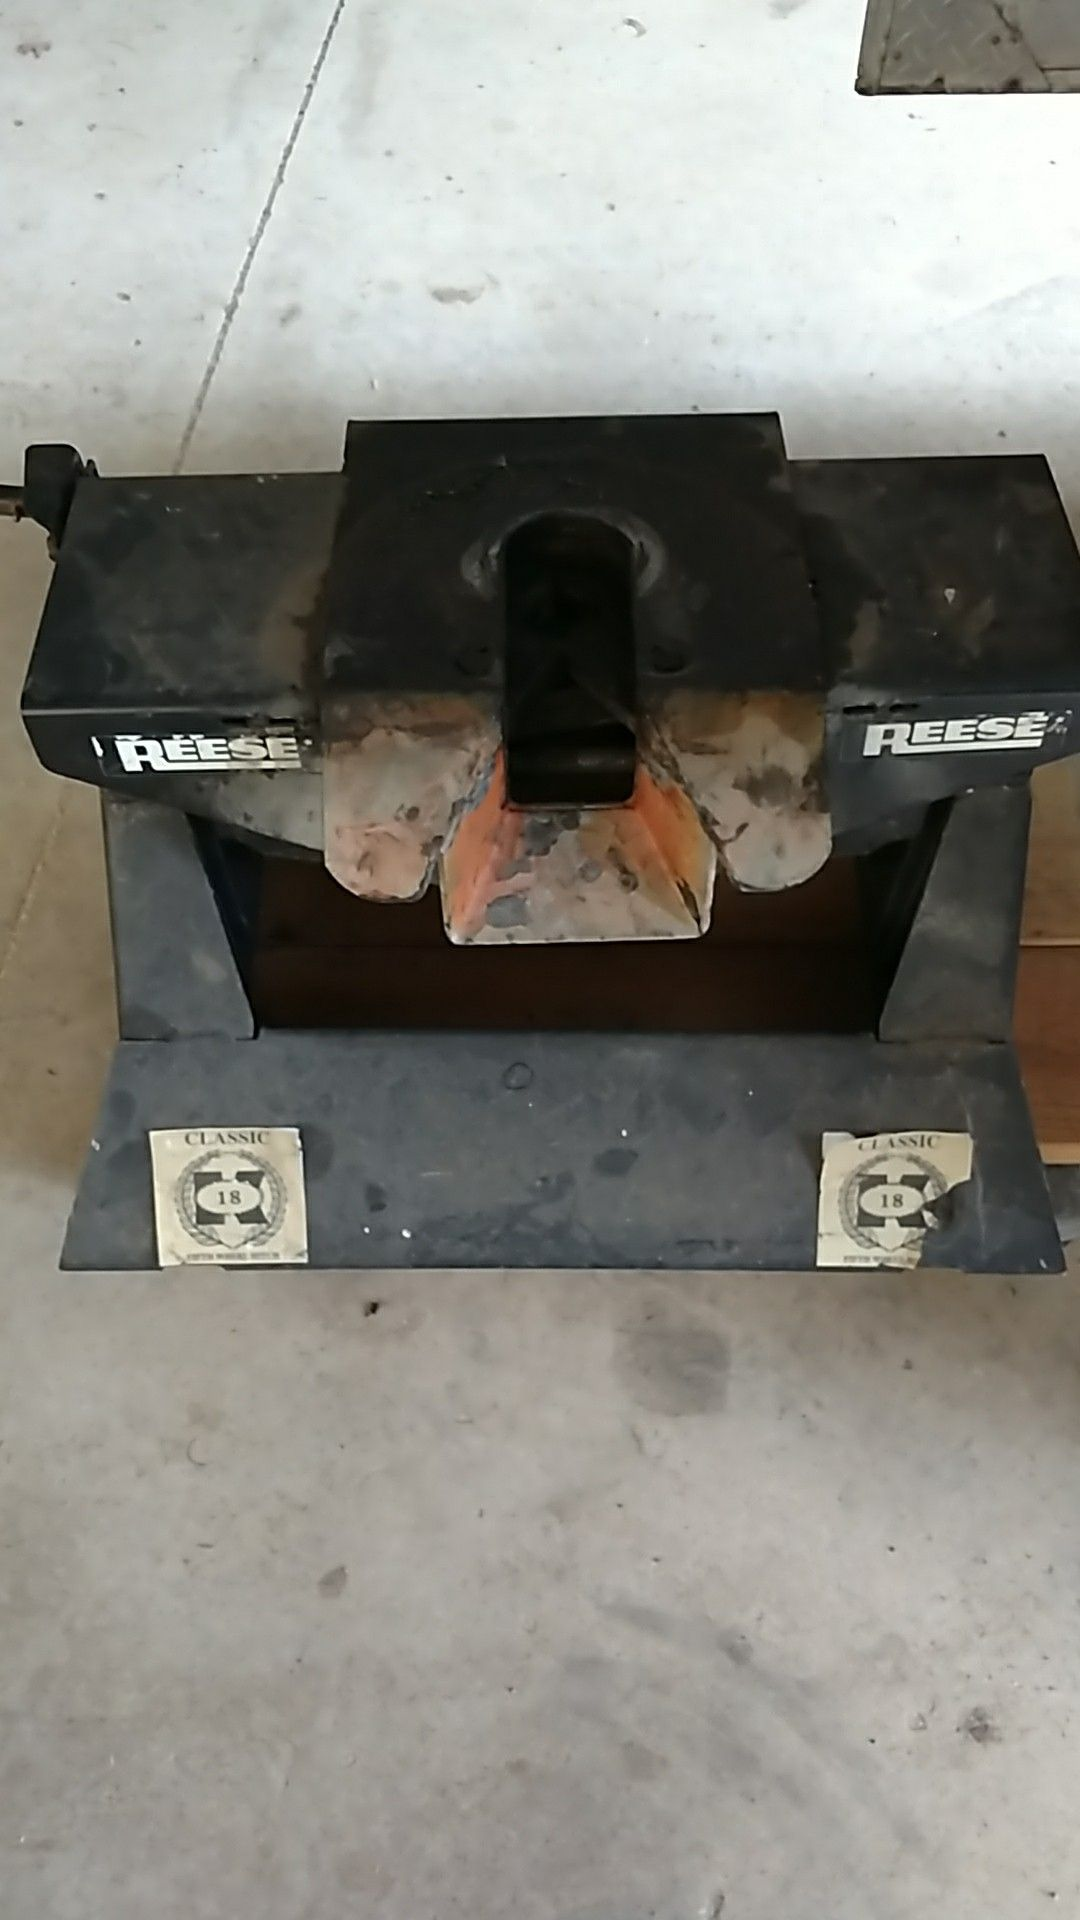 Classic 18 Reese fifth wheel hitch